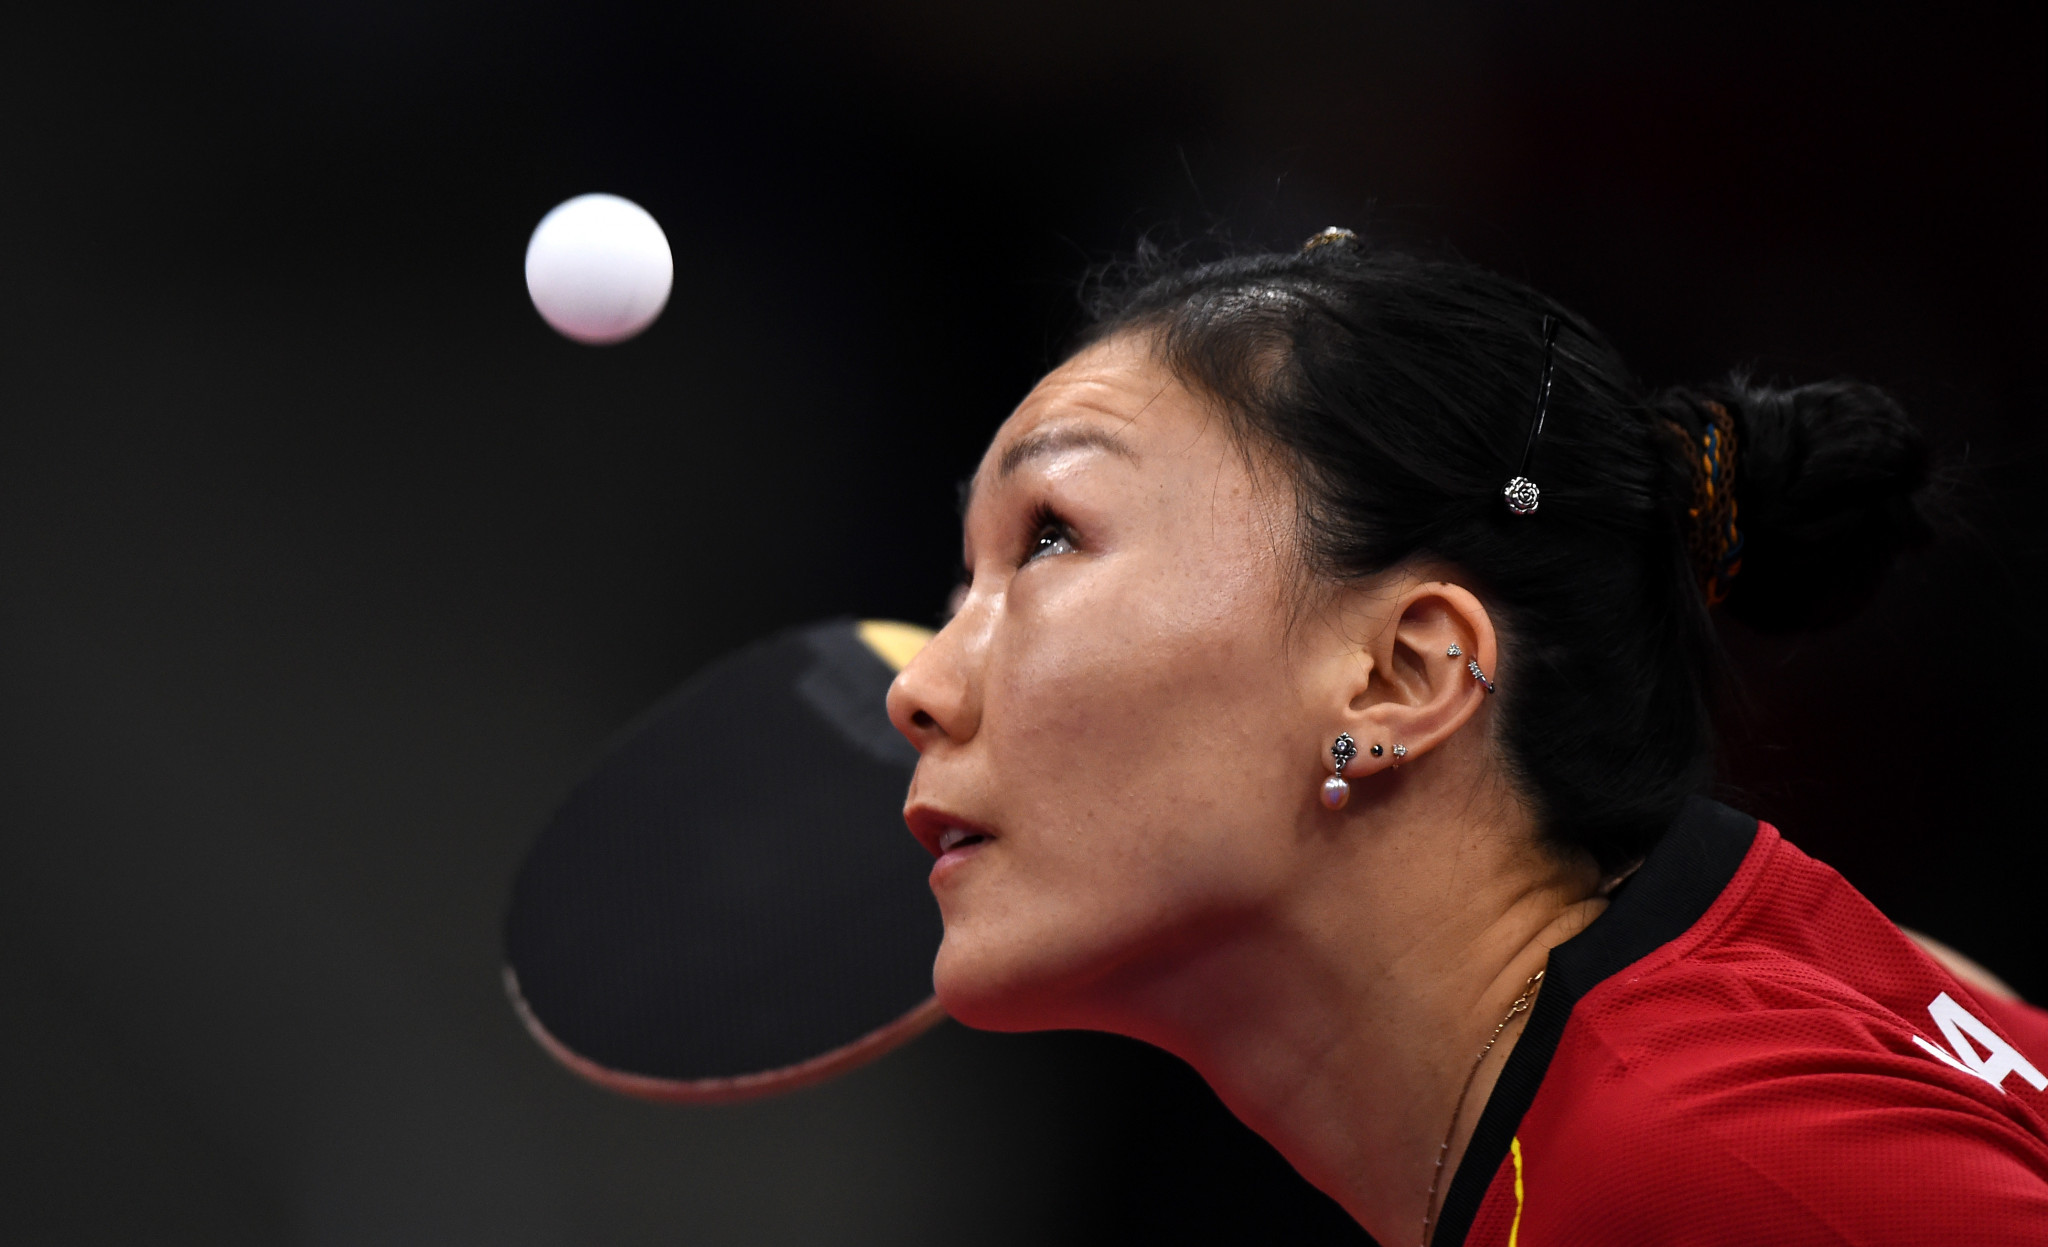 Both table tennis finalists at Minsk 2019 will earn Olympic qualification places ©Getty Images